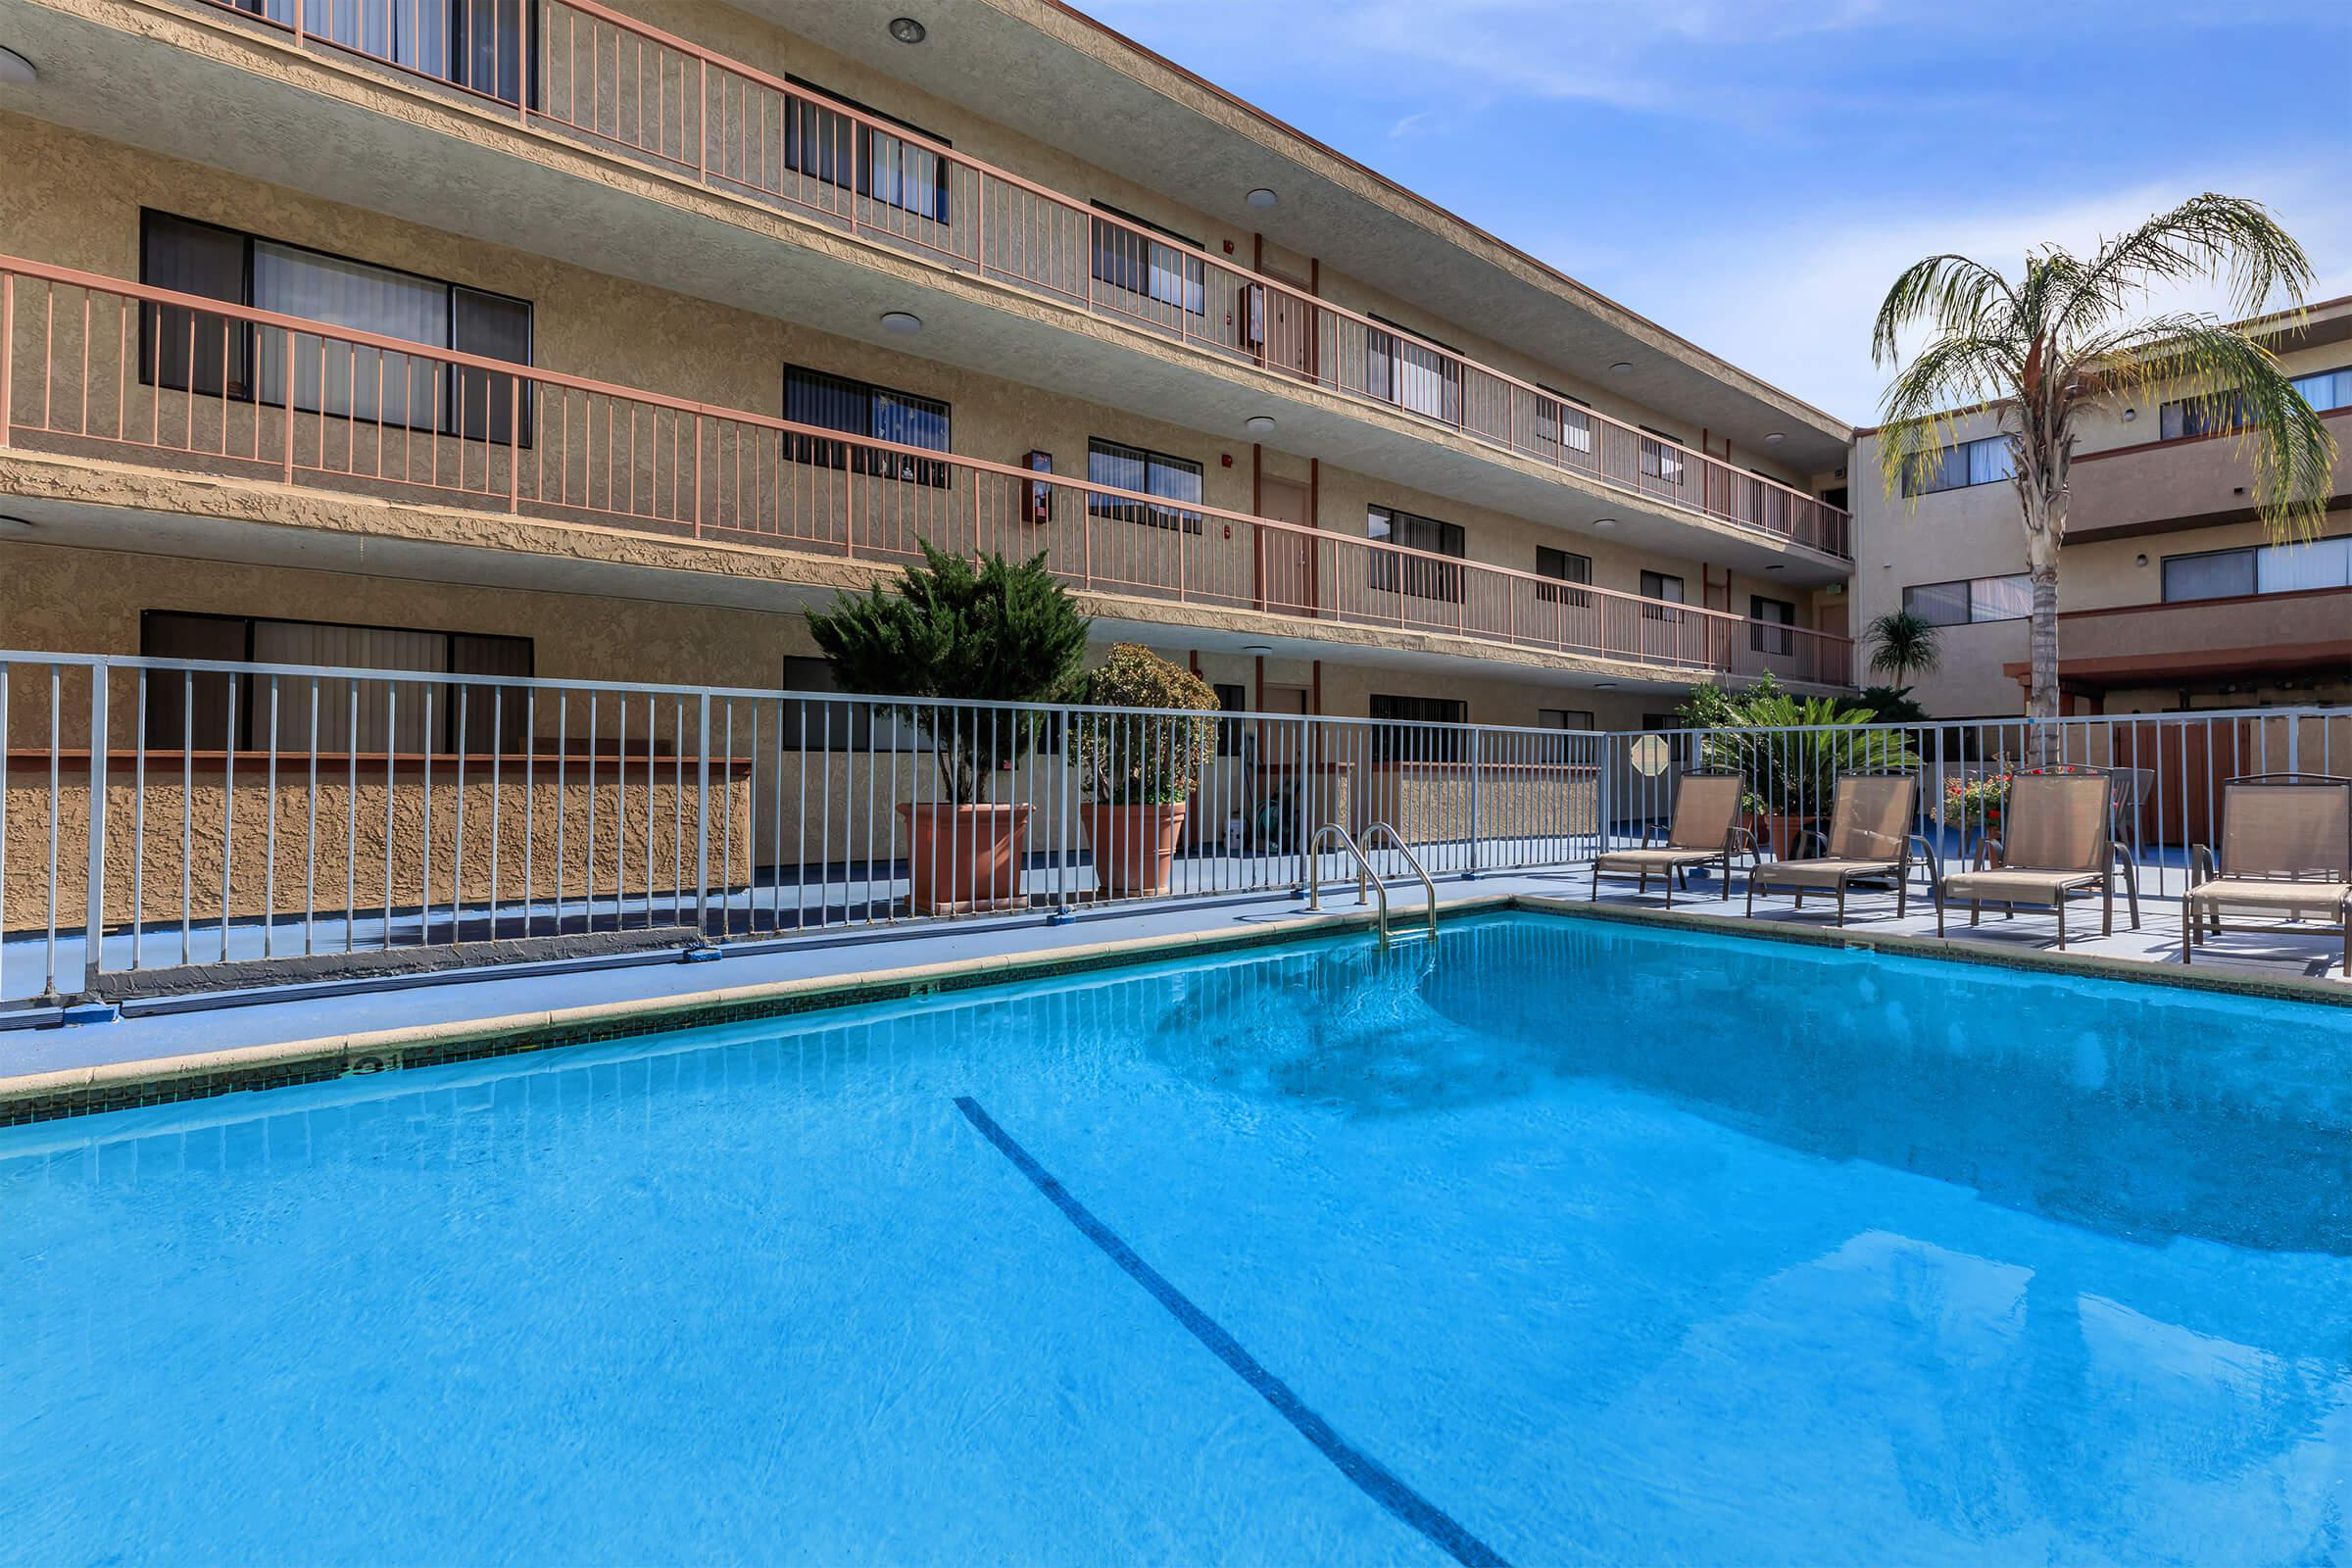 The swimming pool at Valleywood Apartments